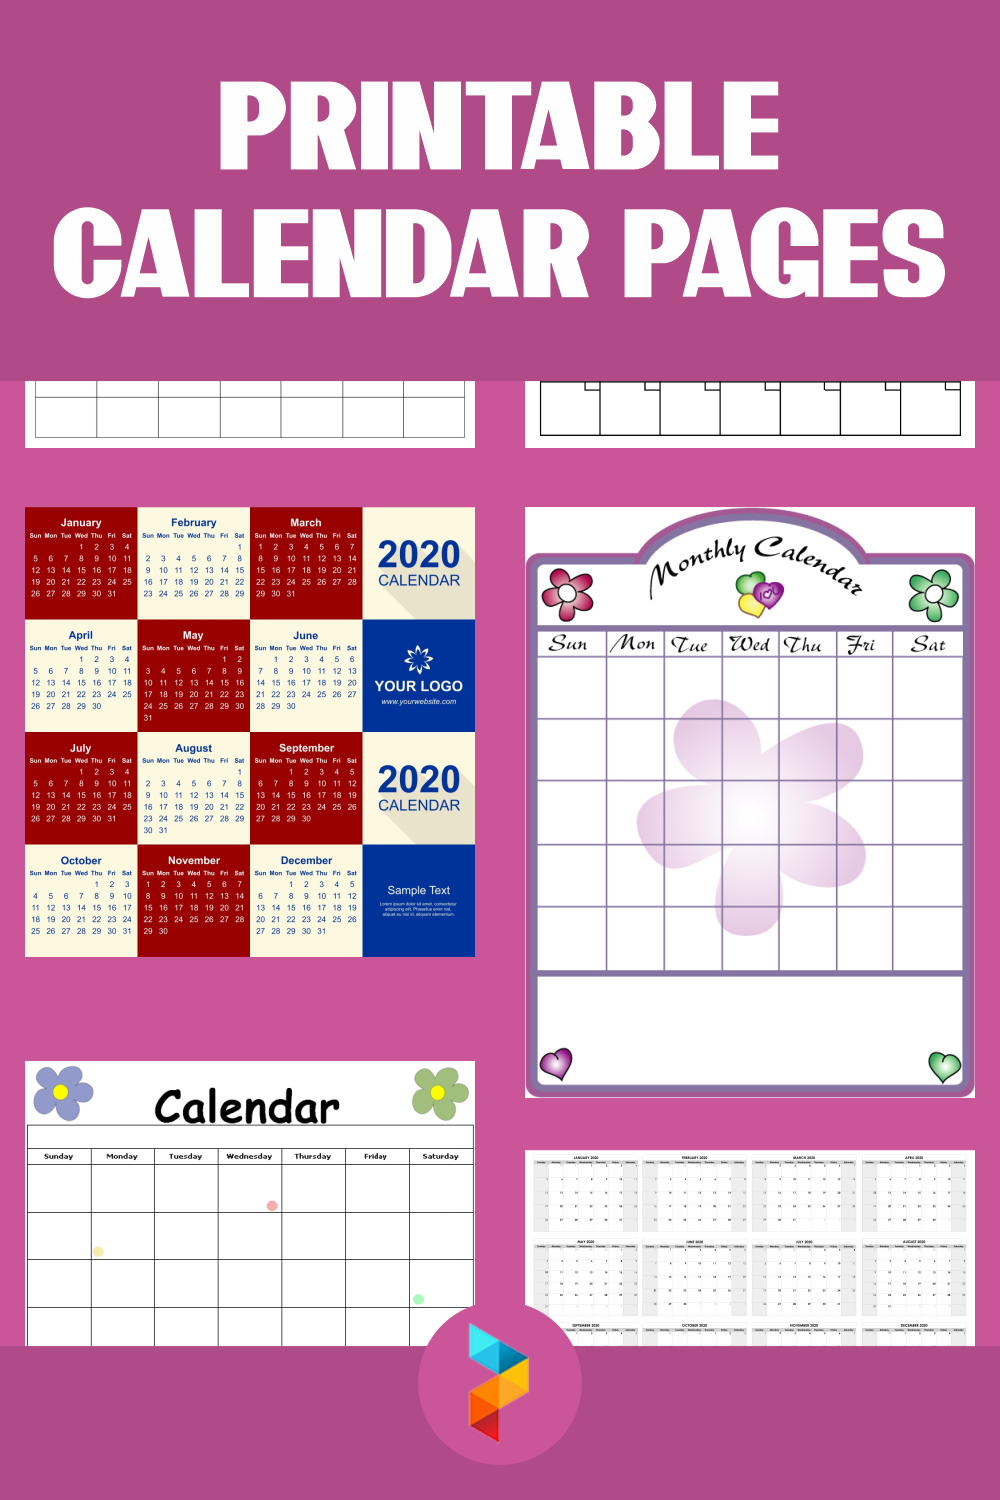 Printable Calendar Pages